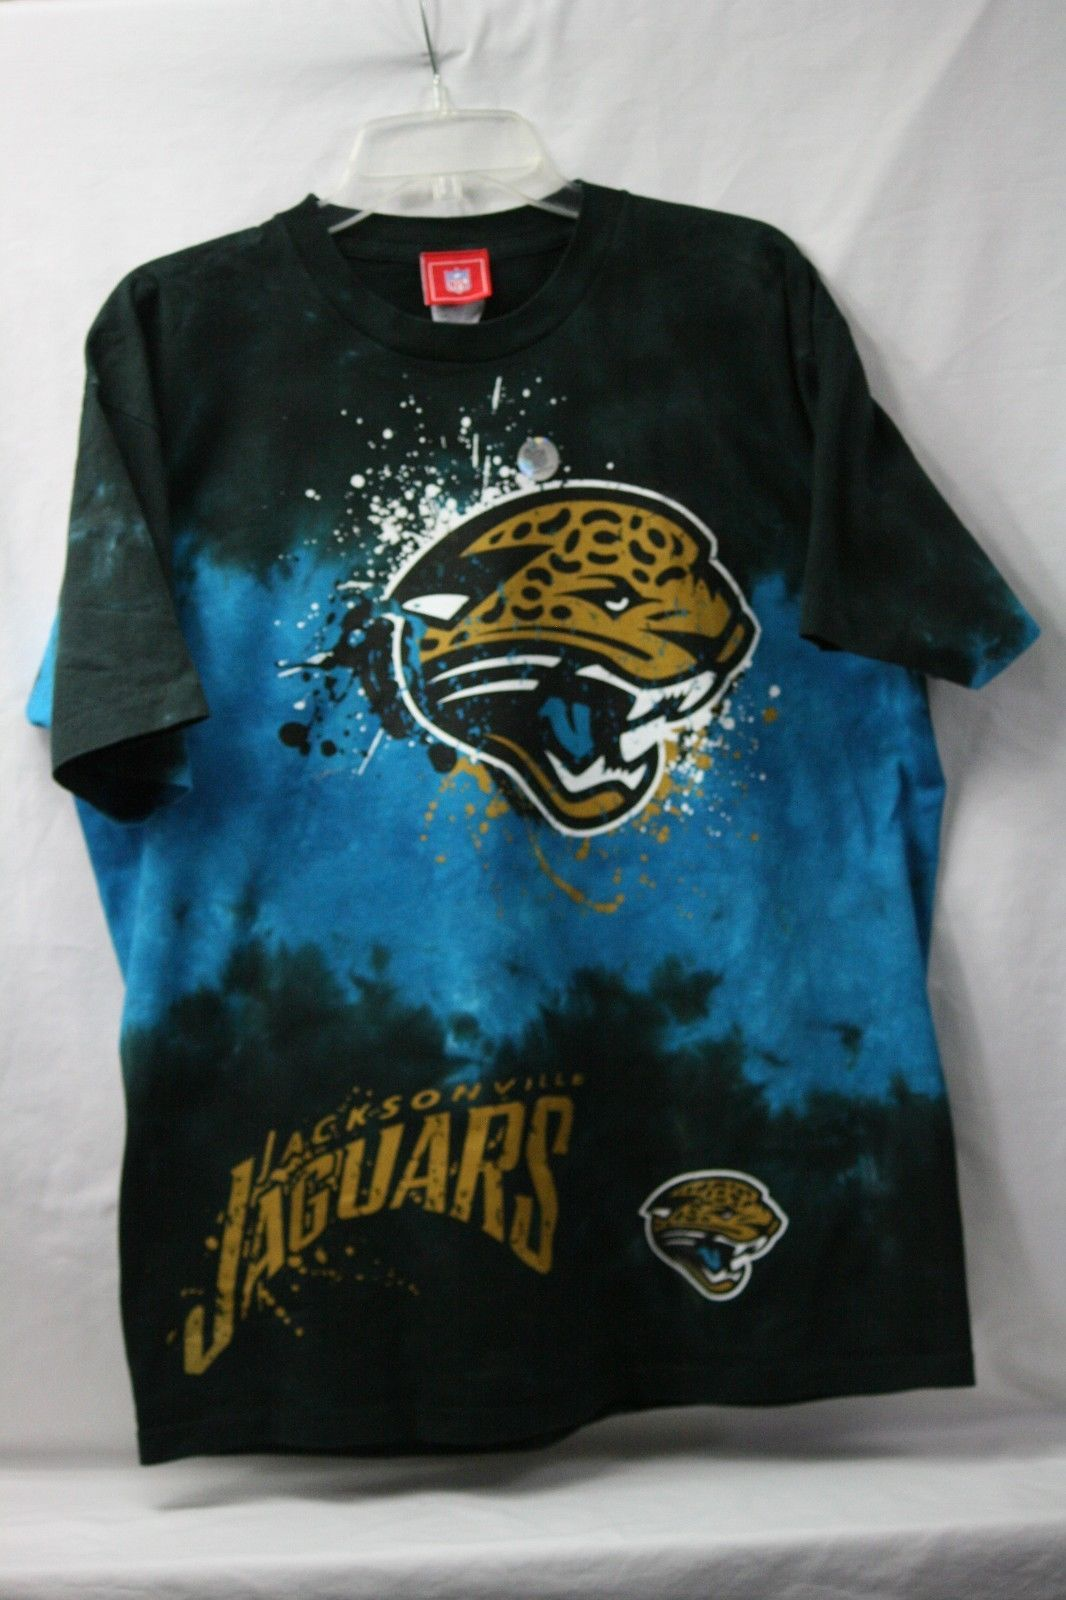 7a8018a1 57. 57. Jacksonville Jaguars Fade Tie Dye Men's T-Shirt Dark Blue New  Without Tags